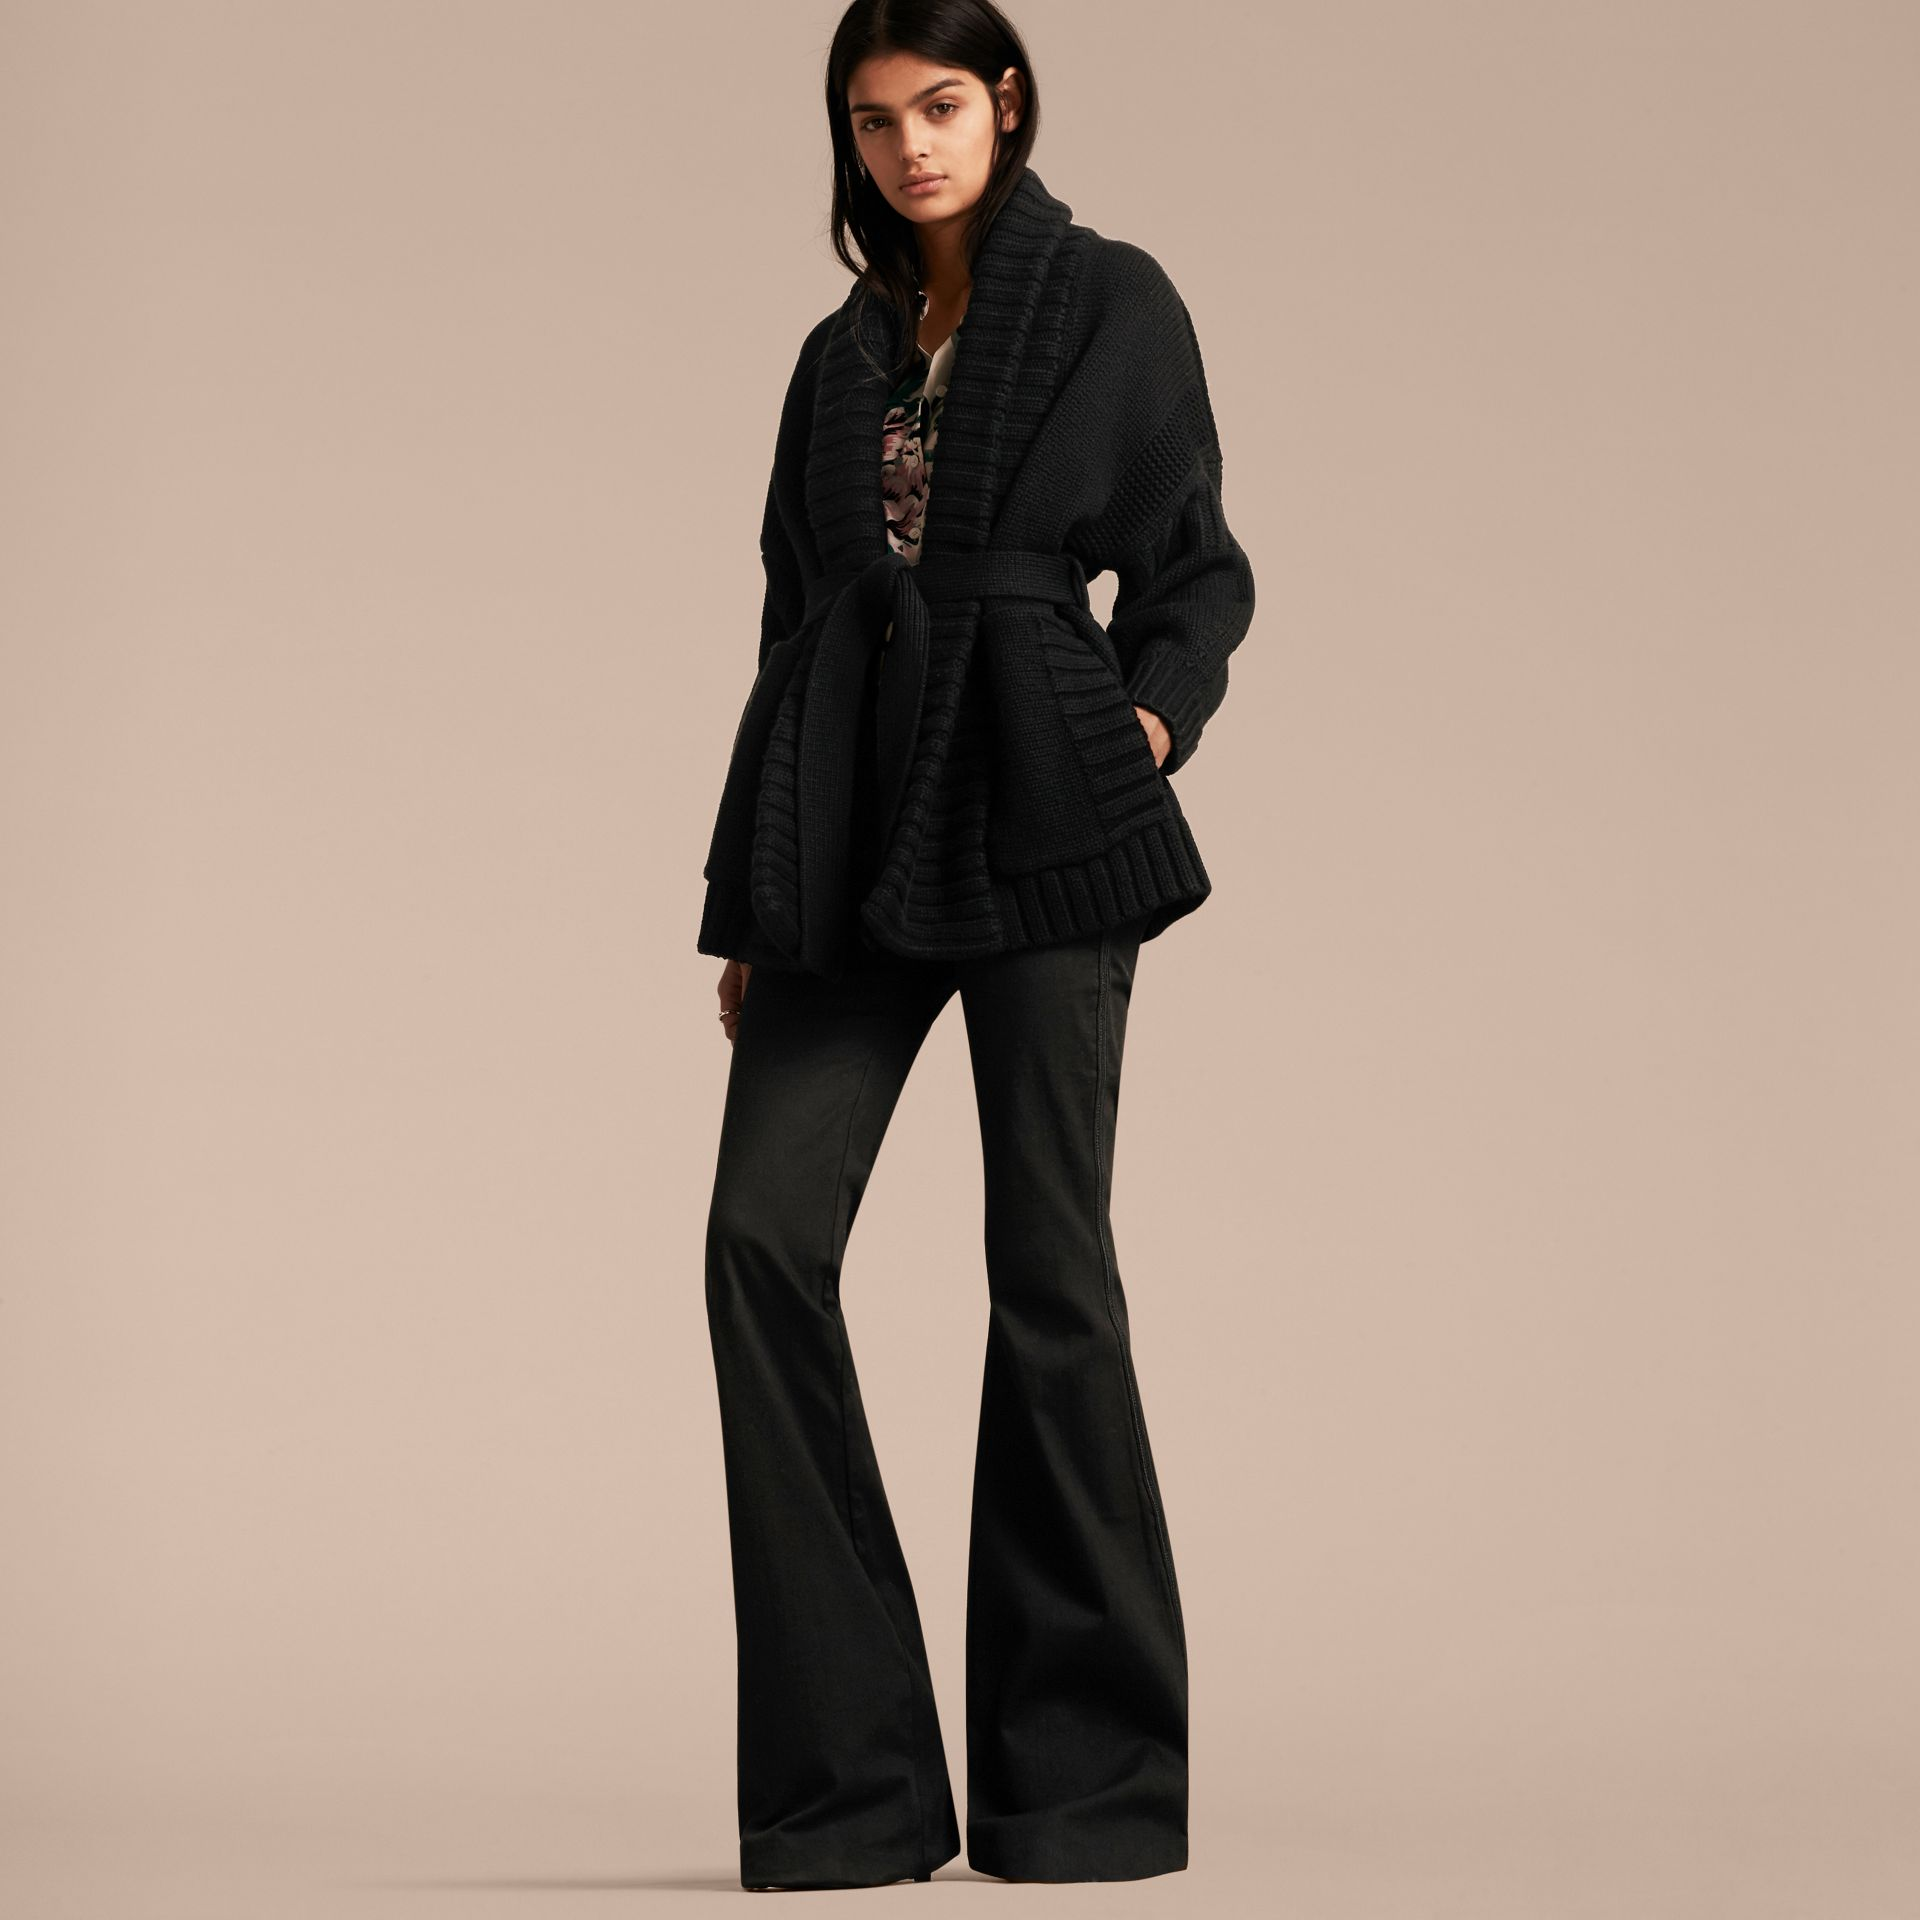 Knitted Wool Cashmere Belted Cardigan Jacket Black - gallery image 6